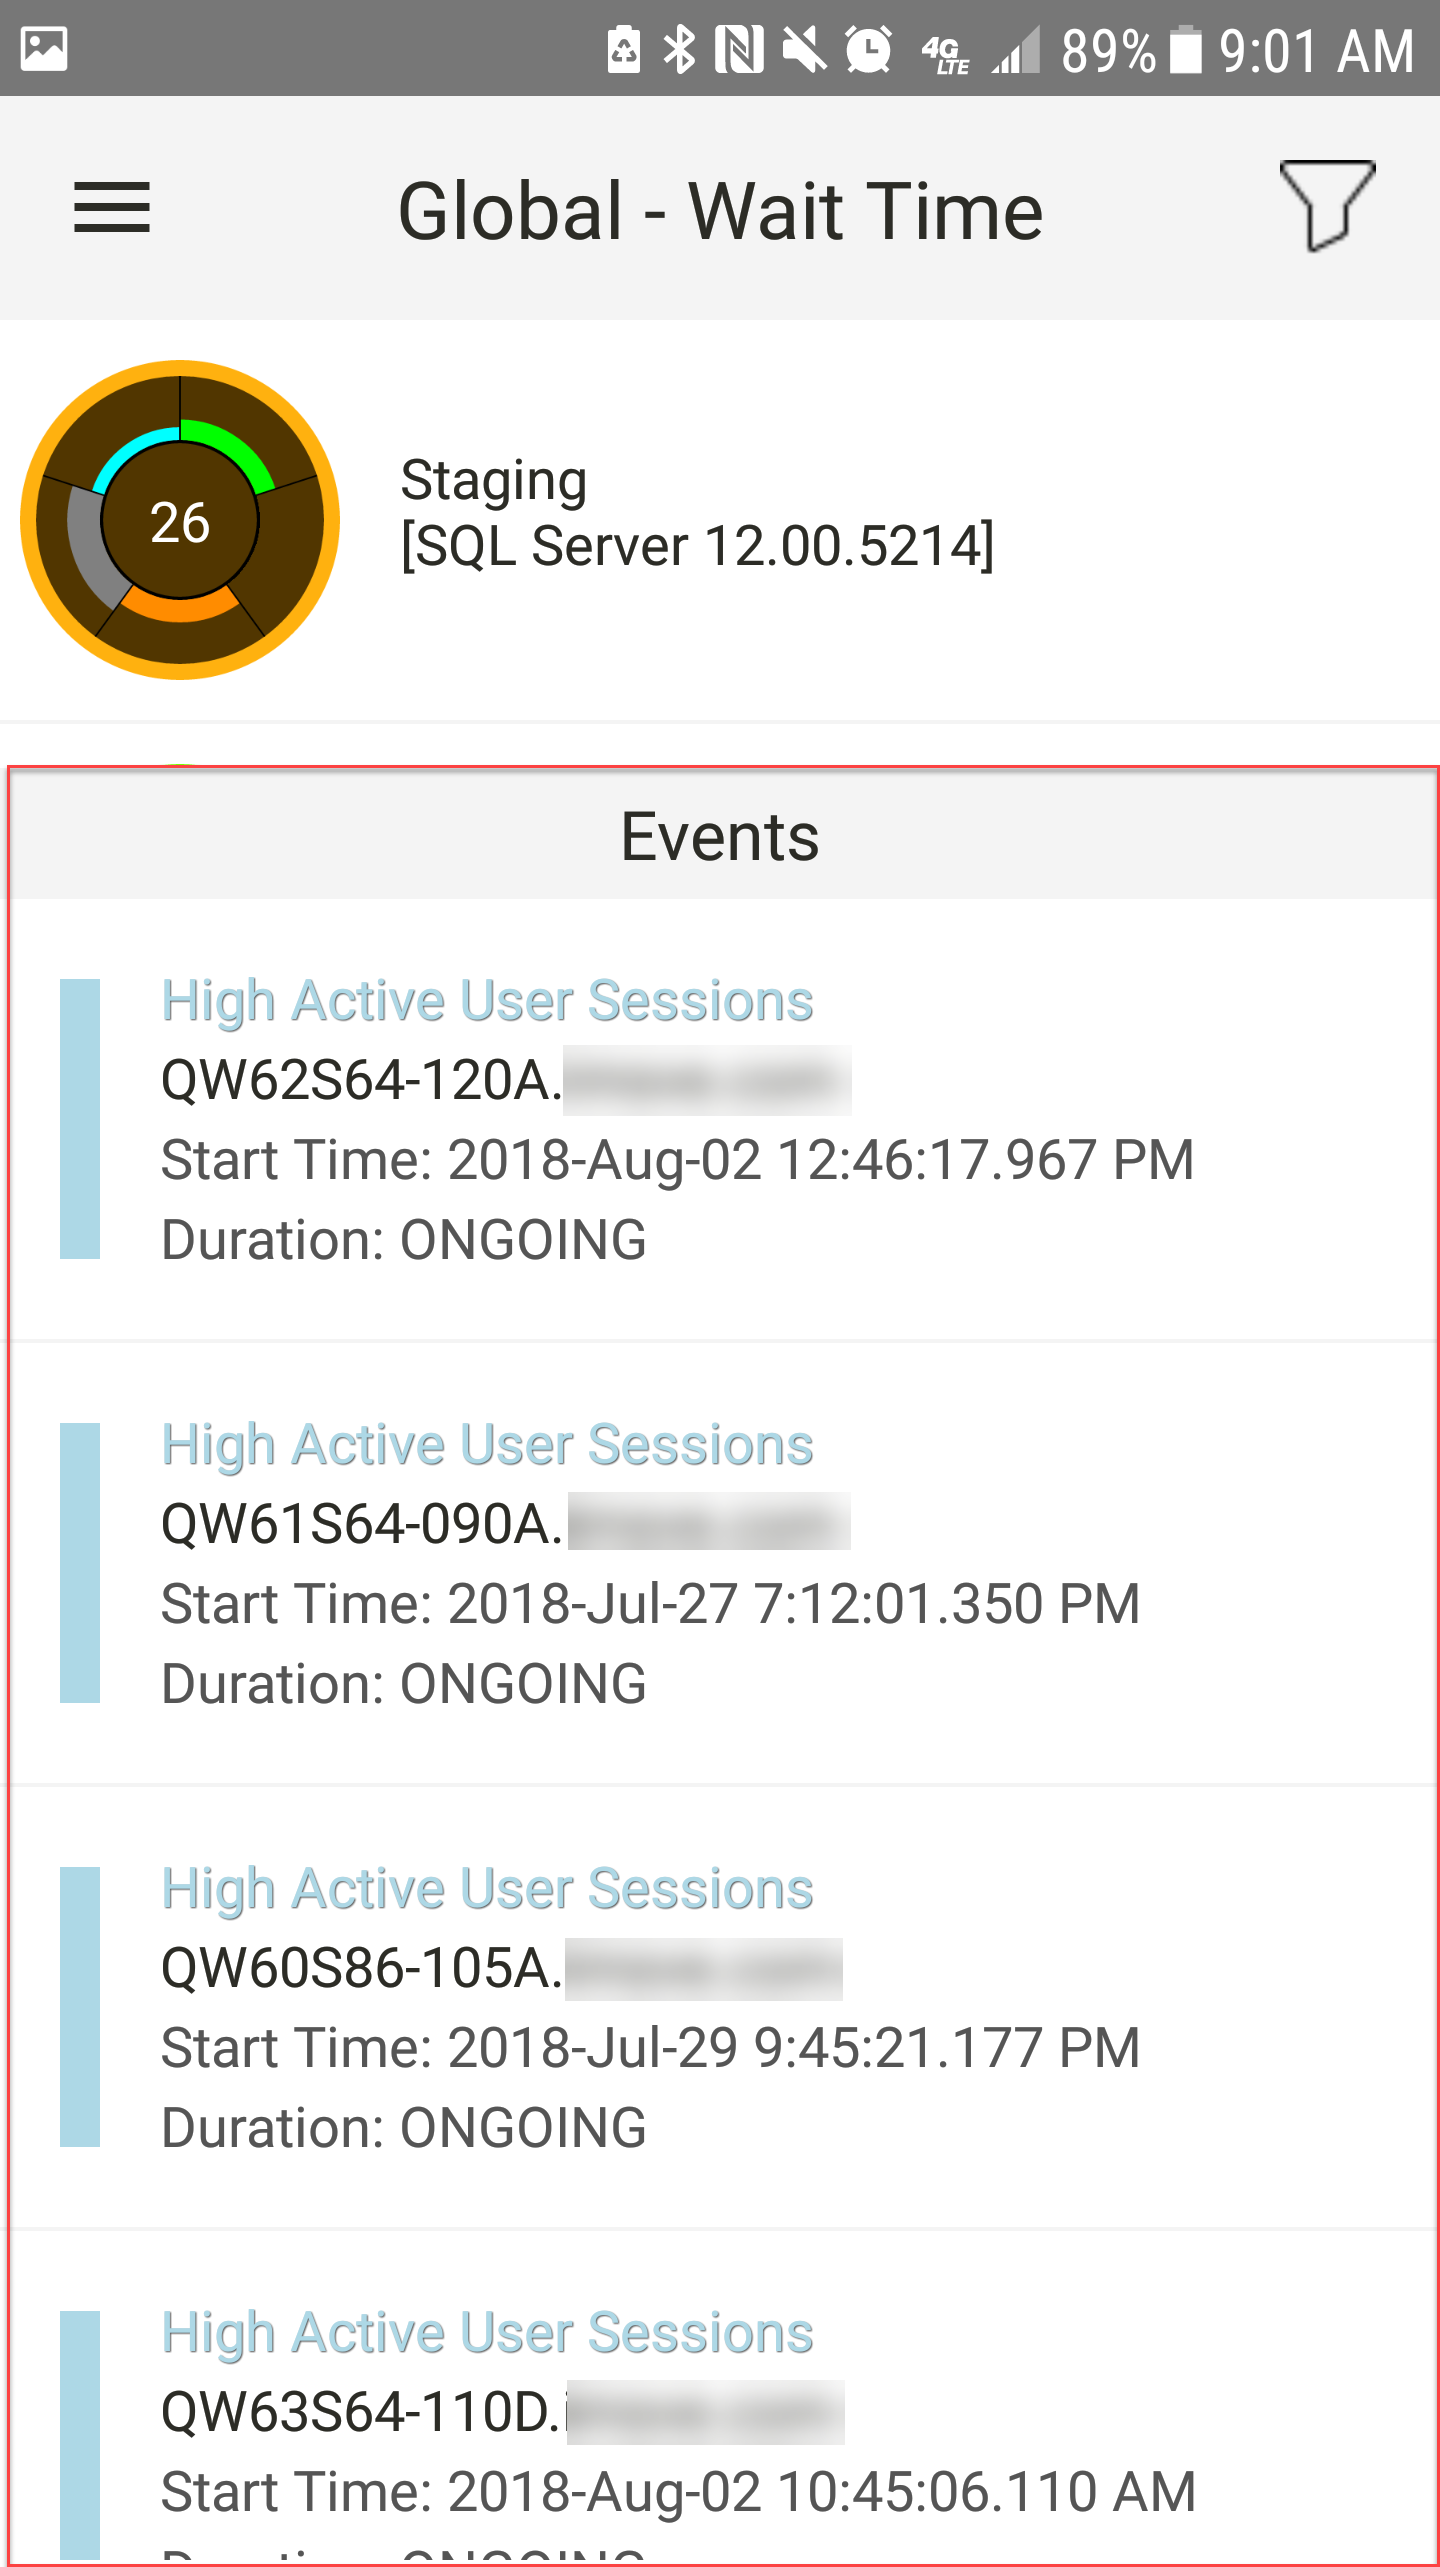 SentryOne App for Android Events Log